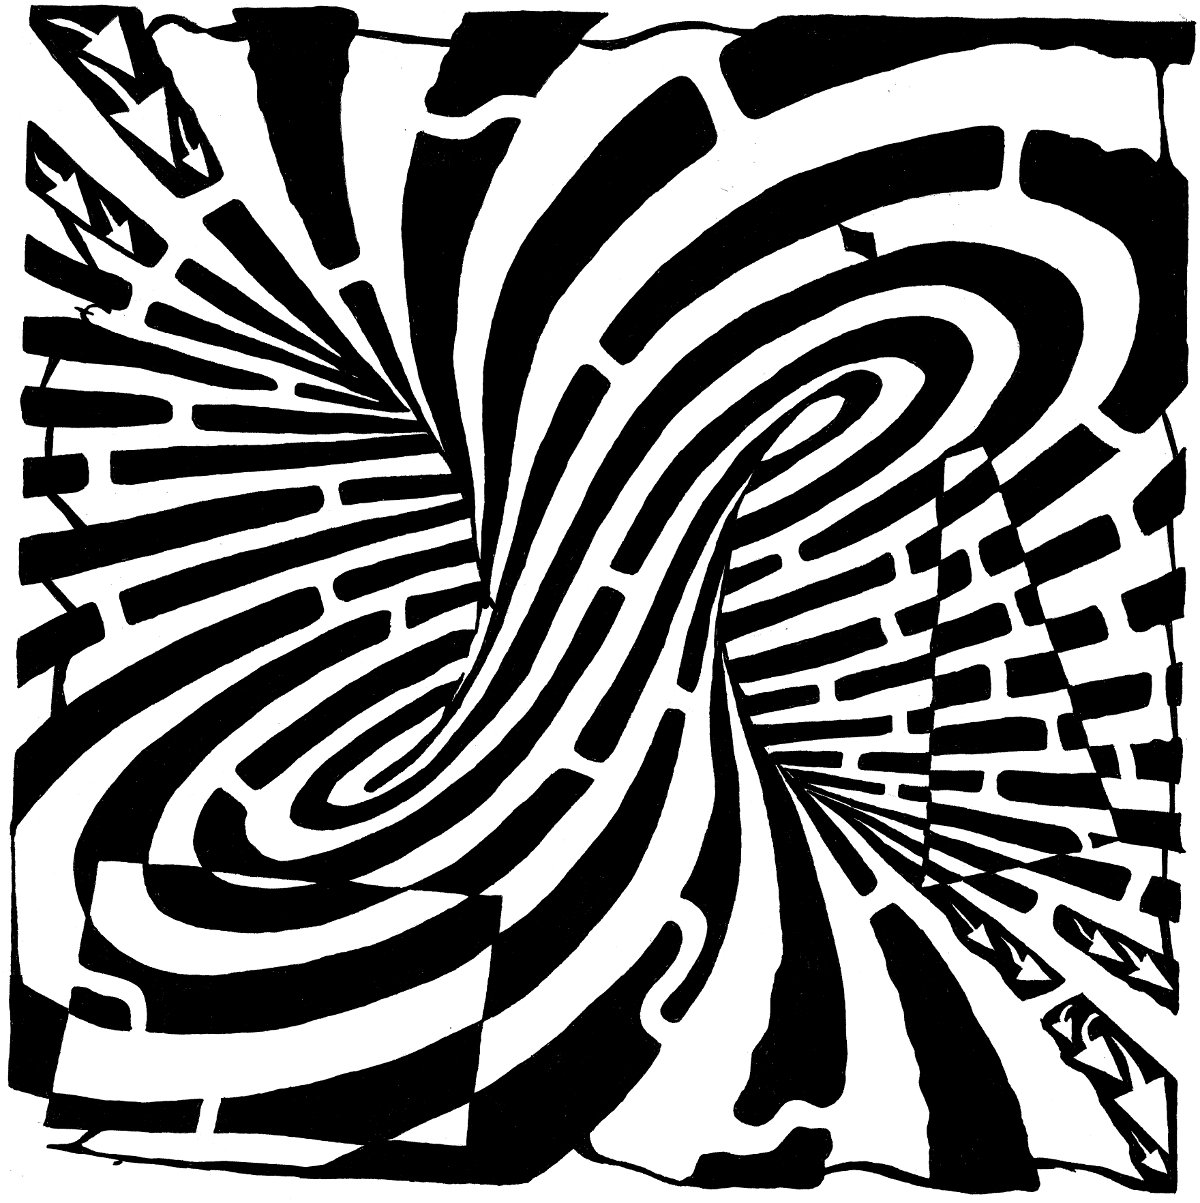 Illusion optic squares - Optical Illusions (Op Art) Coloring Pages ... | 1203x1200